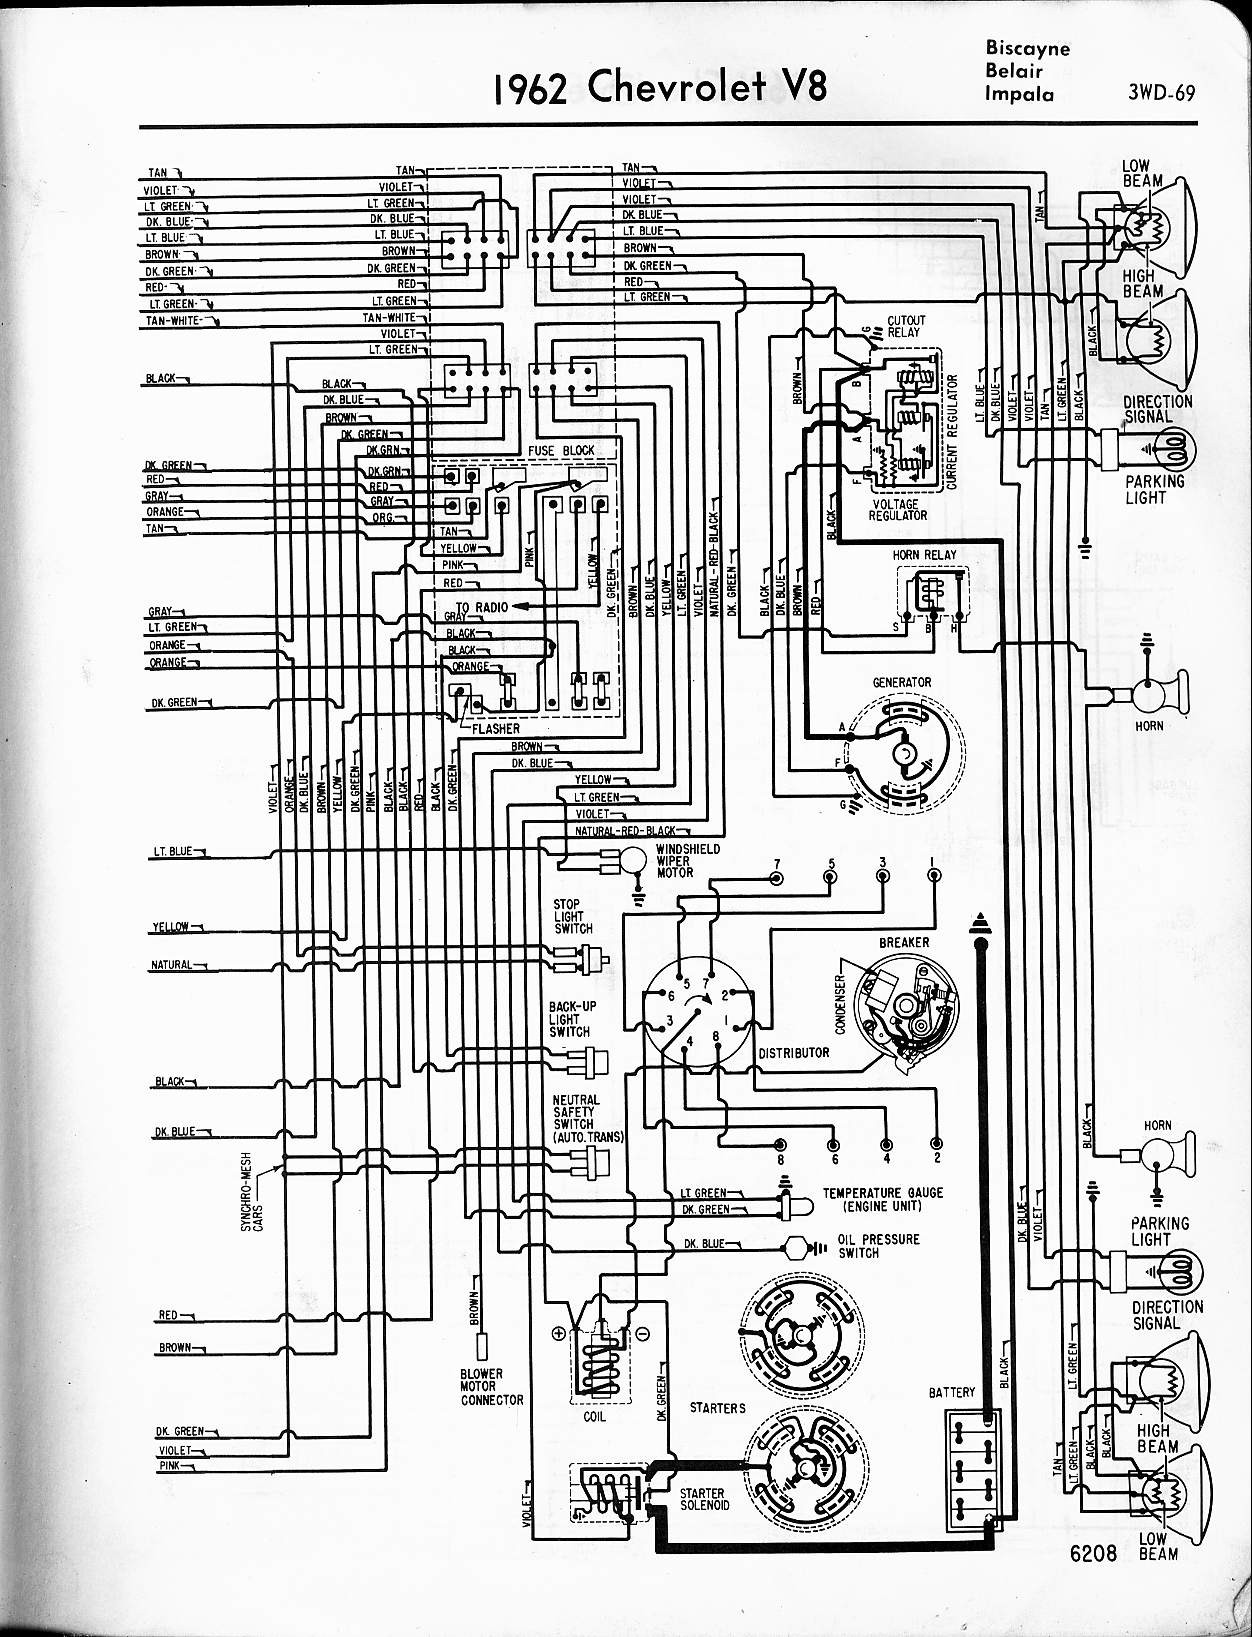 2000 Chevy Impala 3 4 Engine Diagram Chevrolet Sedan 1964 57 65 Wiring Diagrams Of